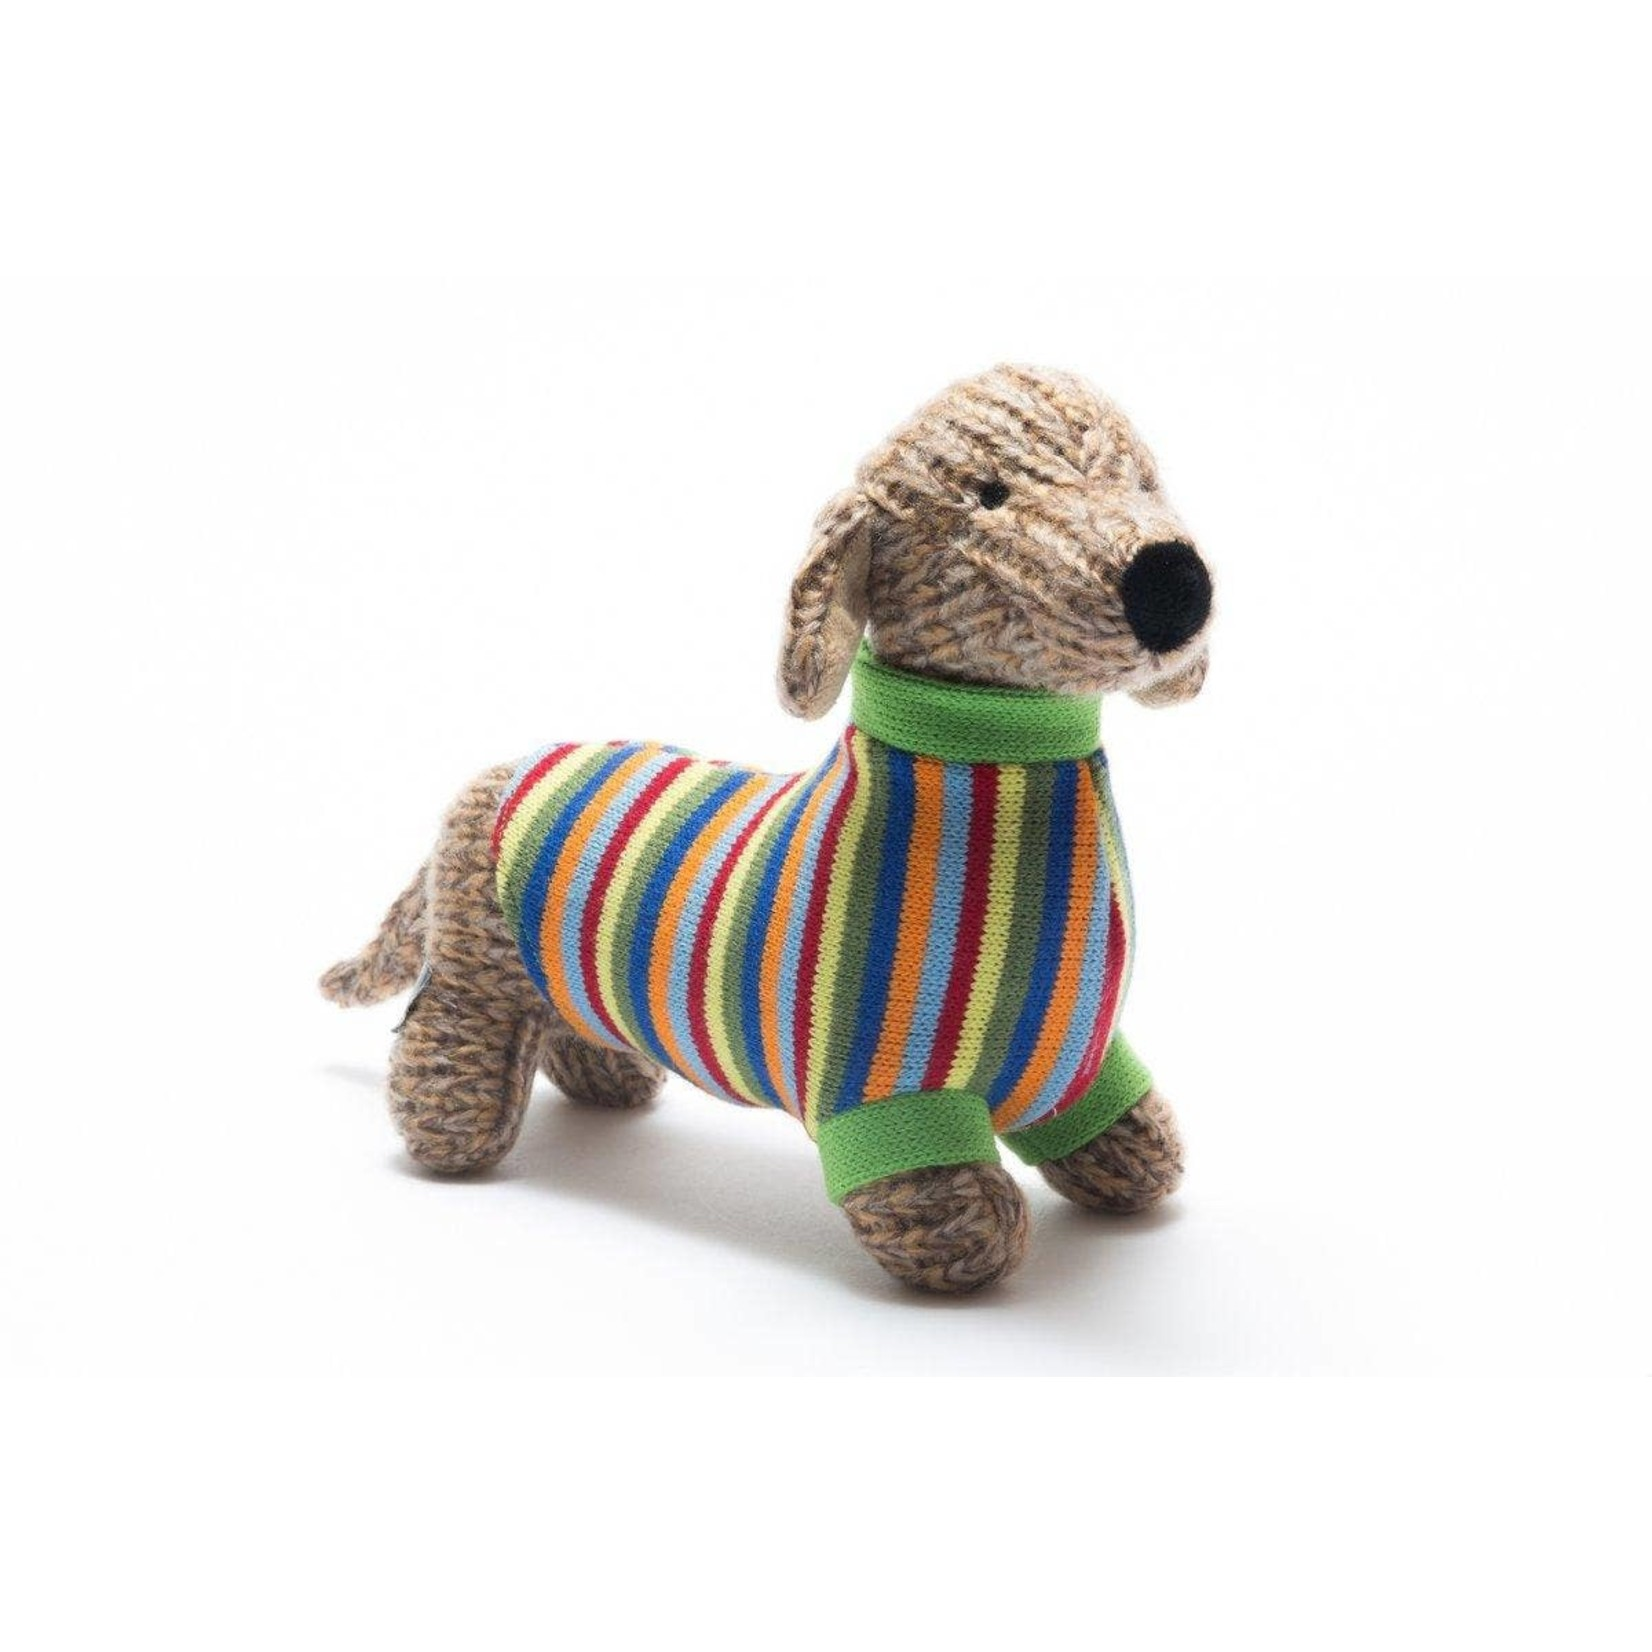 Best Years Knitted Animal Soft Toy